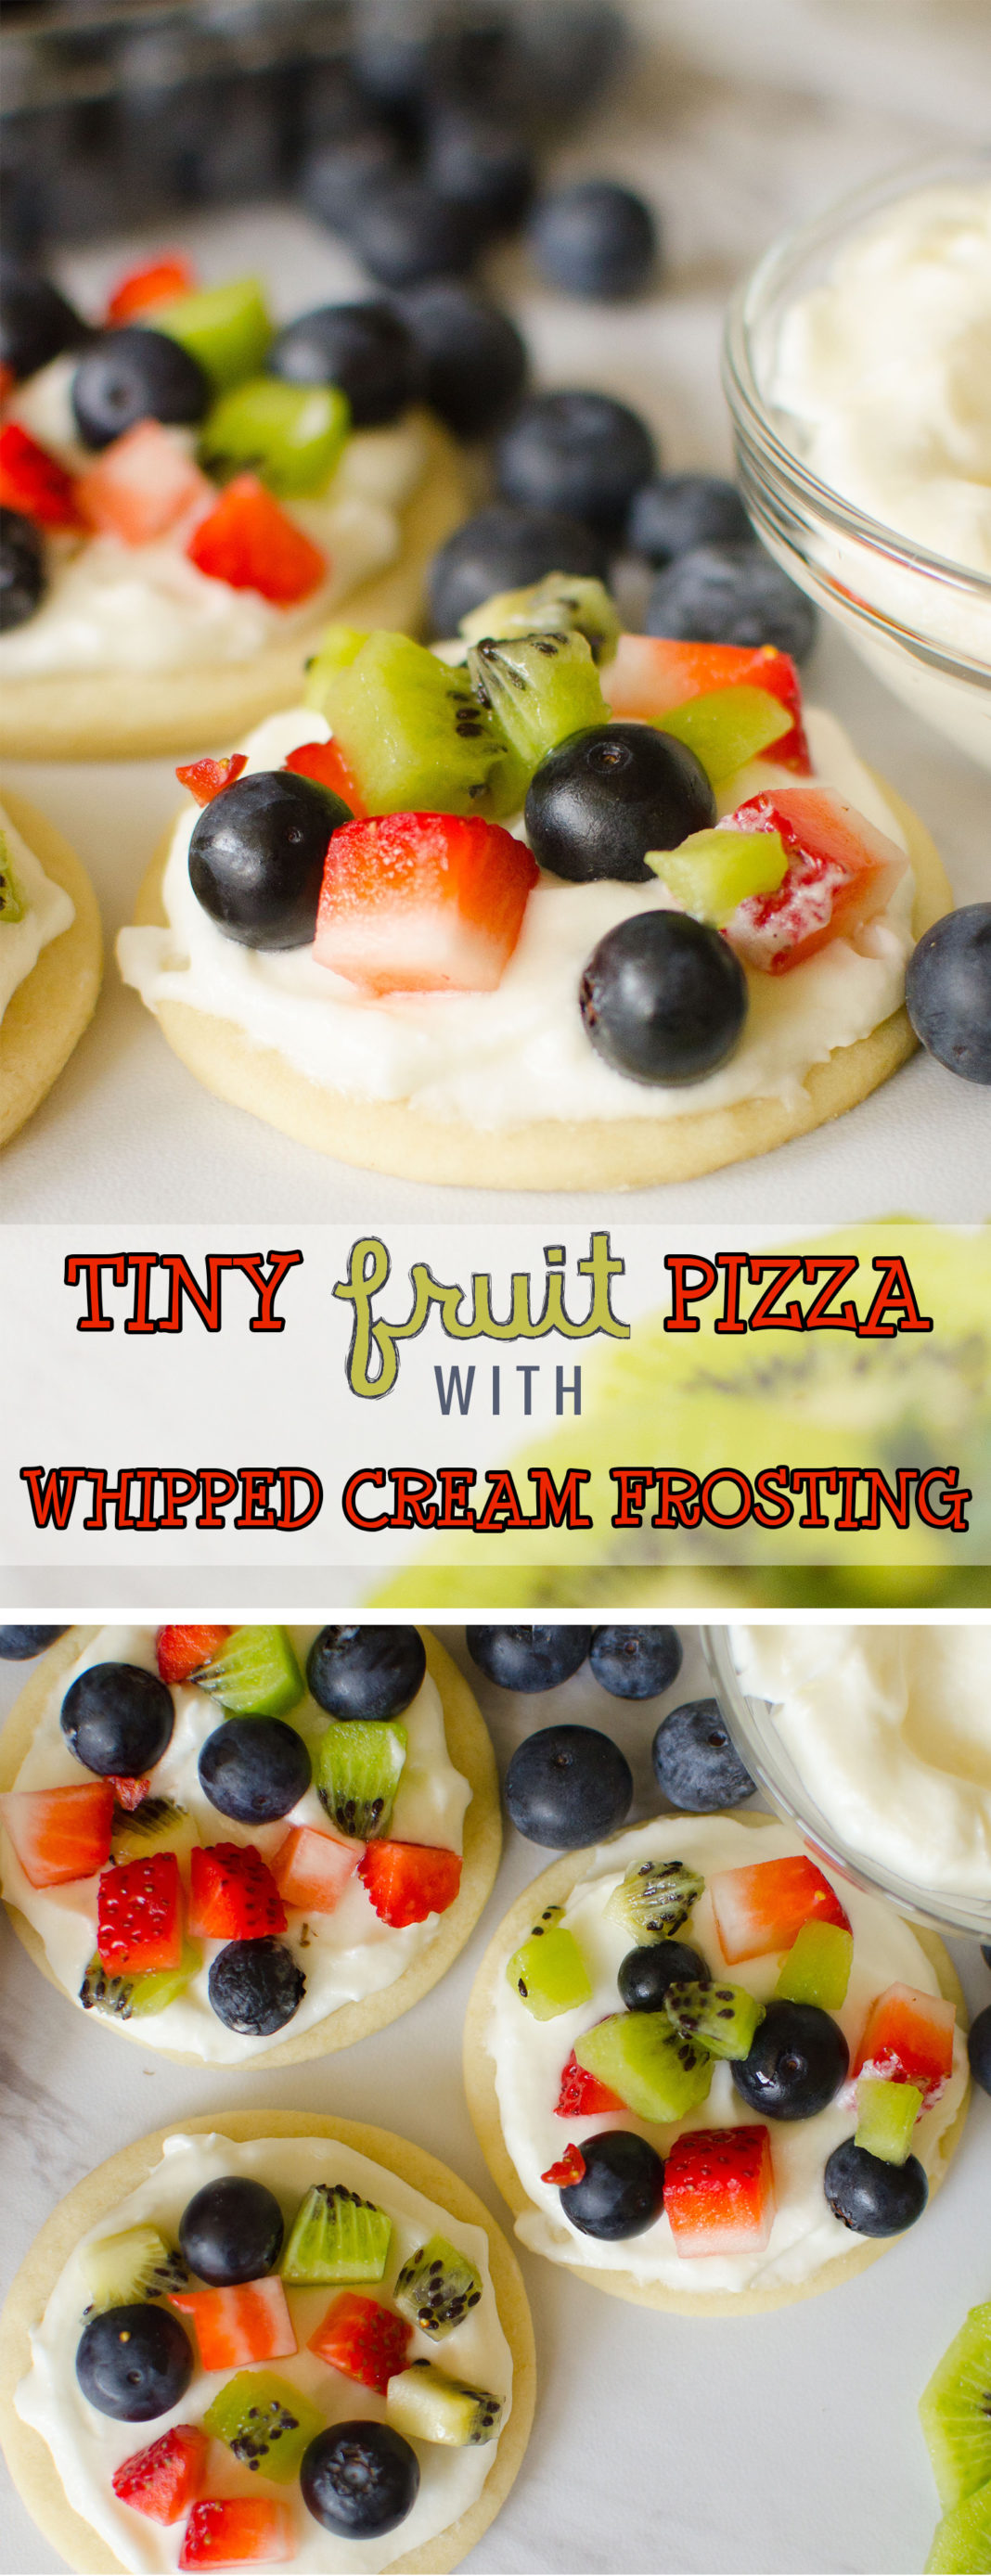 Fruit Pizza Cookies are all the goodness you get in a fruit pizza, in mini form! These smaller individual Sugar Cookie Fruit Pizzas are the perfect dessert. Soft, sugar cookie dough is baked into soft cookies, then topped with a homemade whipped cream frosting and diced fresh fruit. Easy & delicious treat that everyone loves! #Fruit #pizza #recipe #food #dessert #Spring #babyshower #party #partyfood #Cookies #cookie #fruitpizza from Butter With A Side of Bread